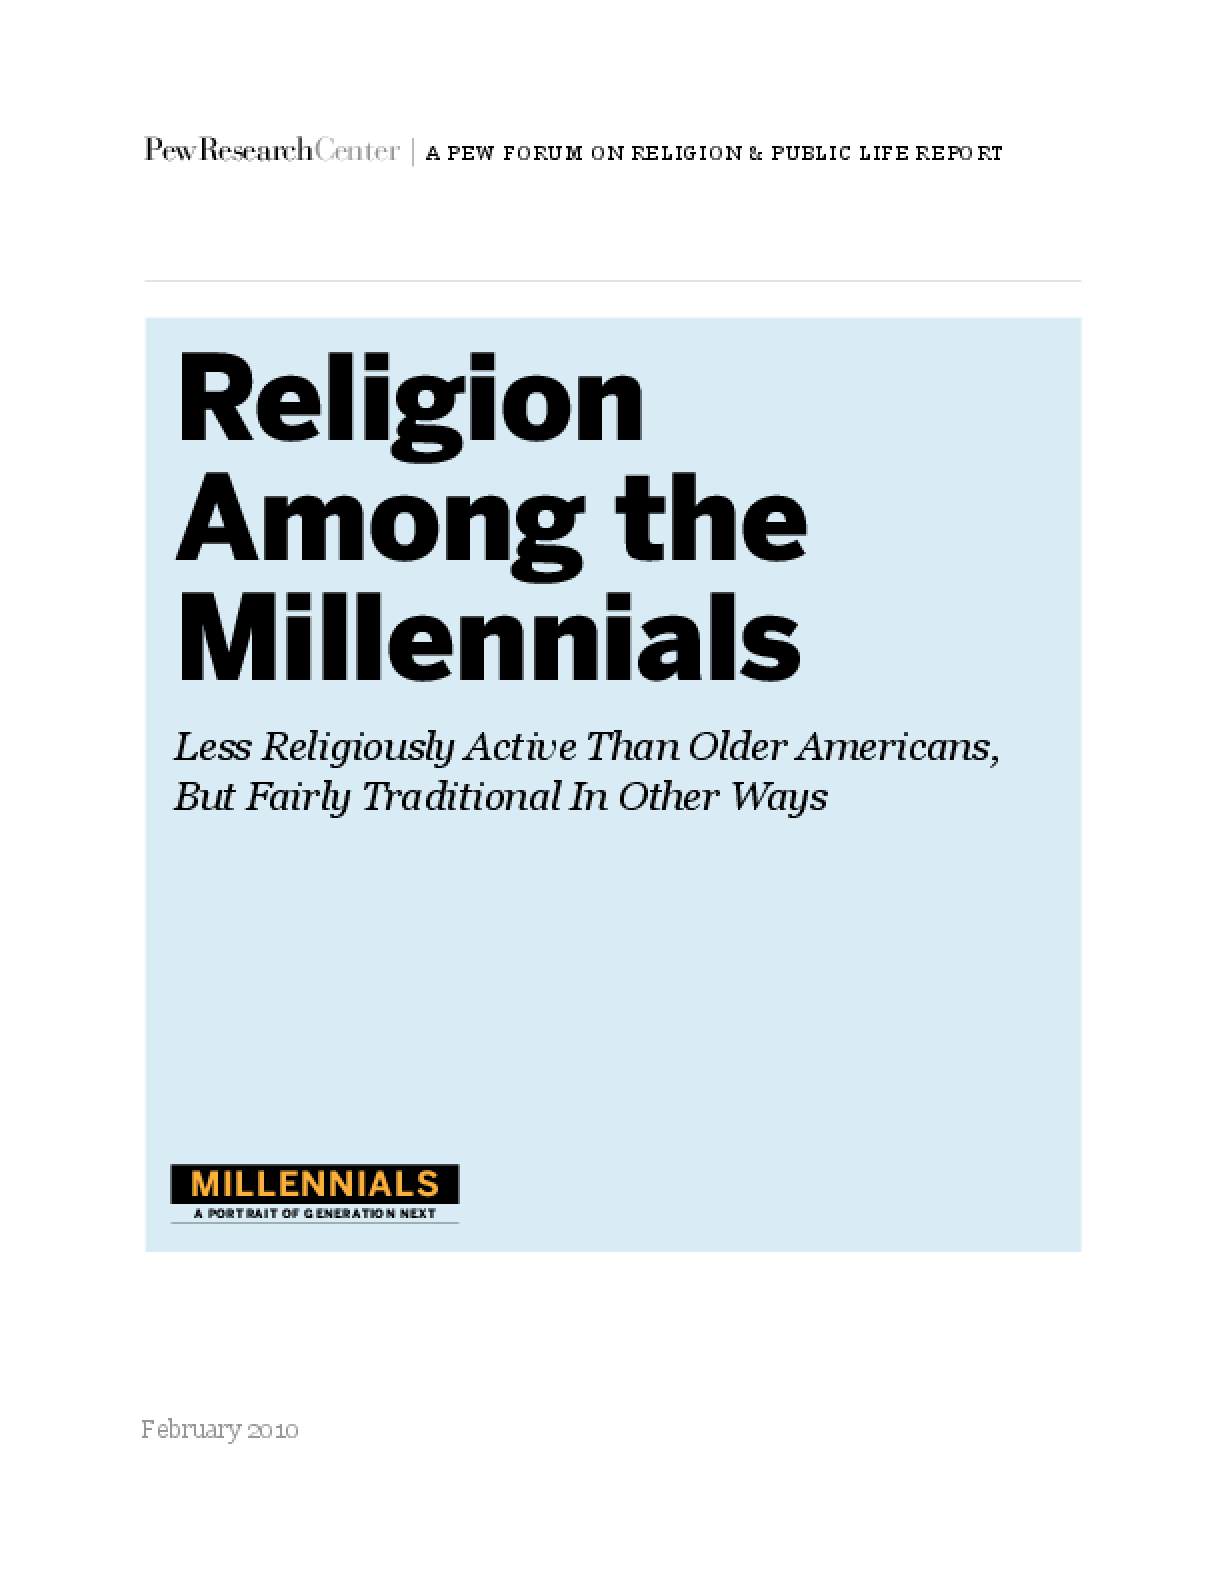 Religion Among the Millennials